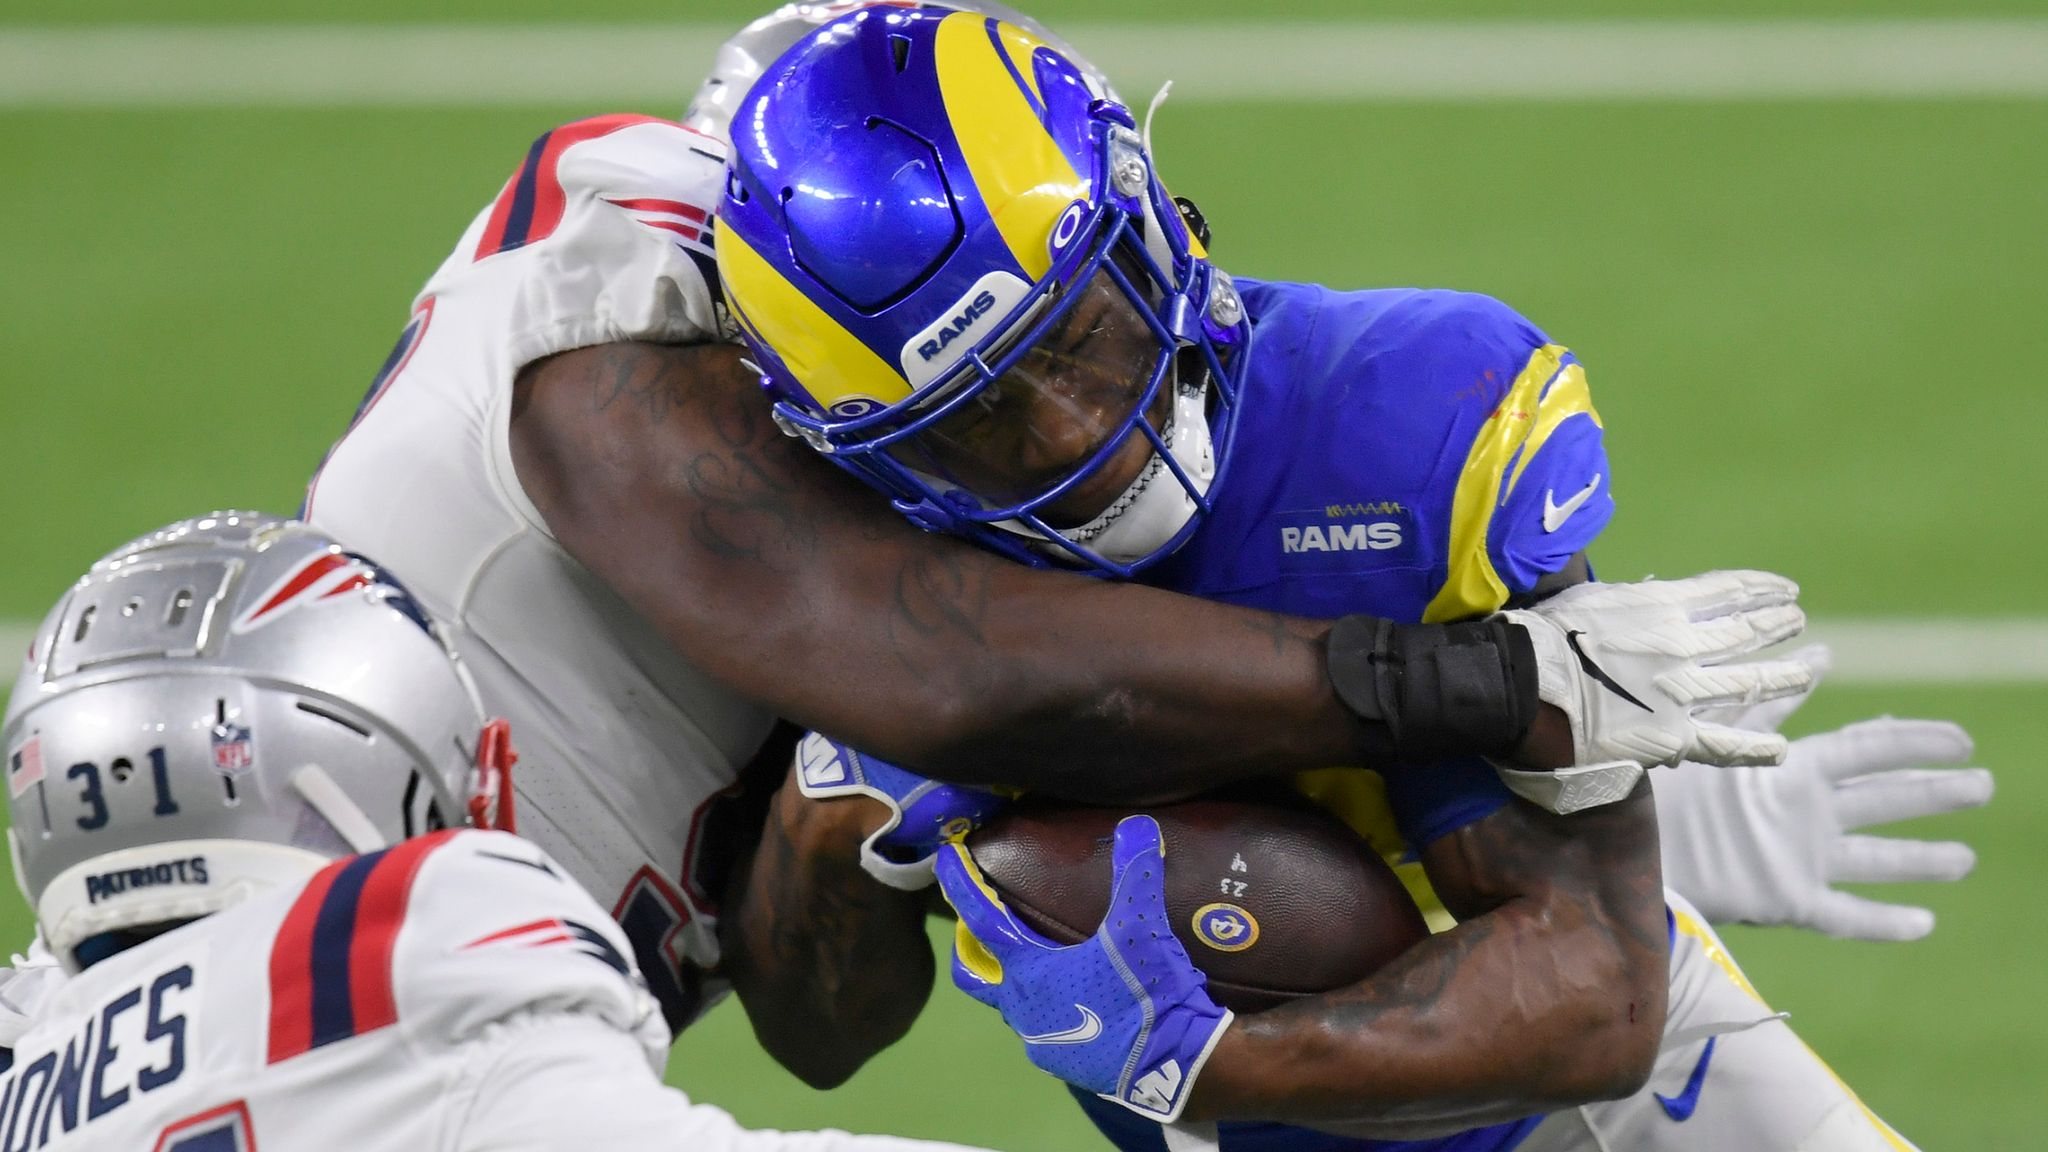 New England Patriots 3 24 Los Angeles Rams Cam Akers Rushes For 171 Yards In Blowout Win Nfl News Sky Sports